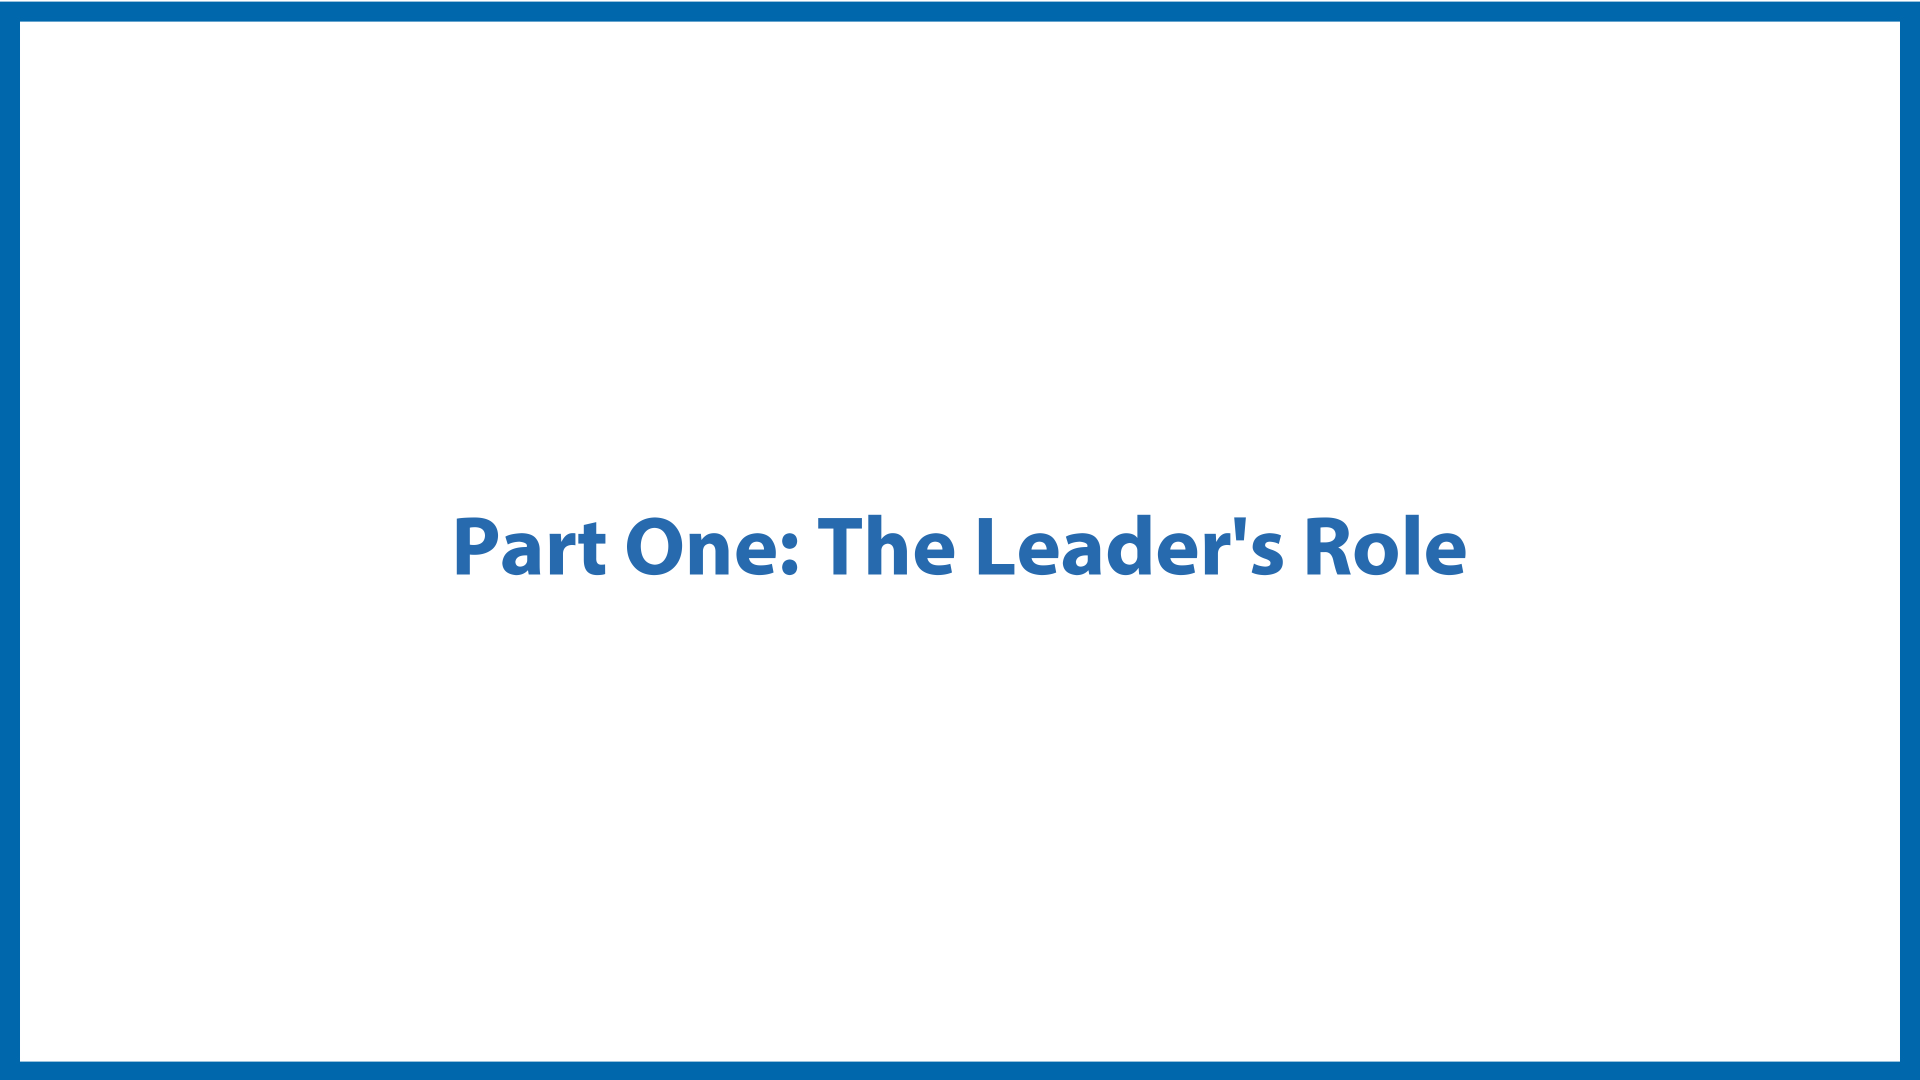 <center>Part One:<br/>The Leader's Role</center>